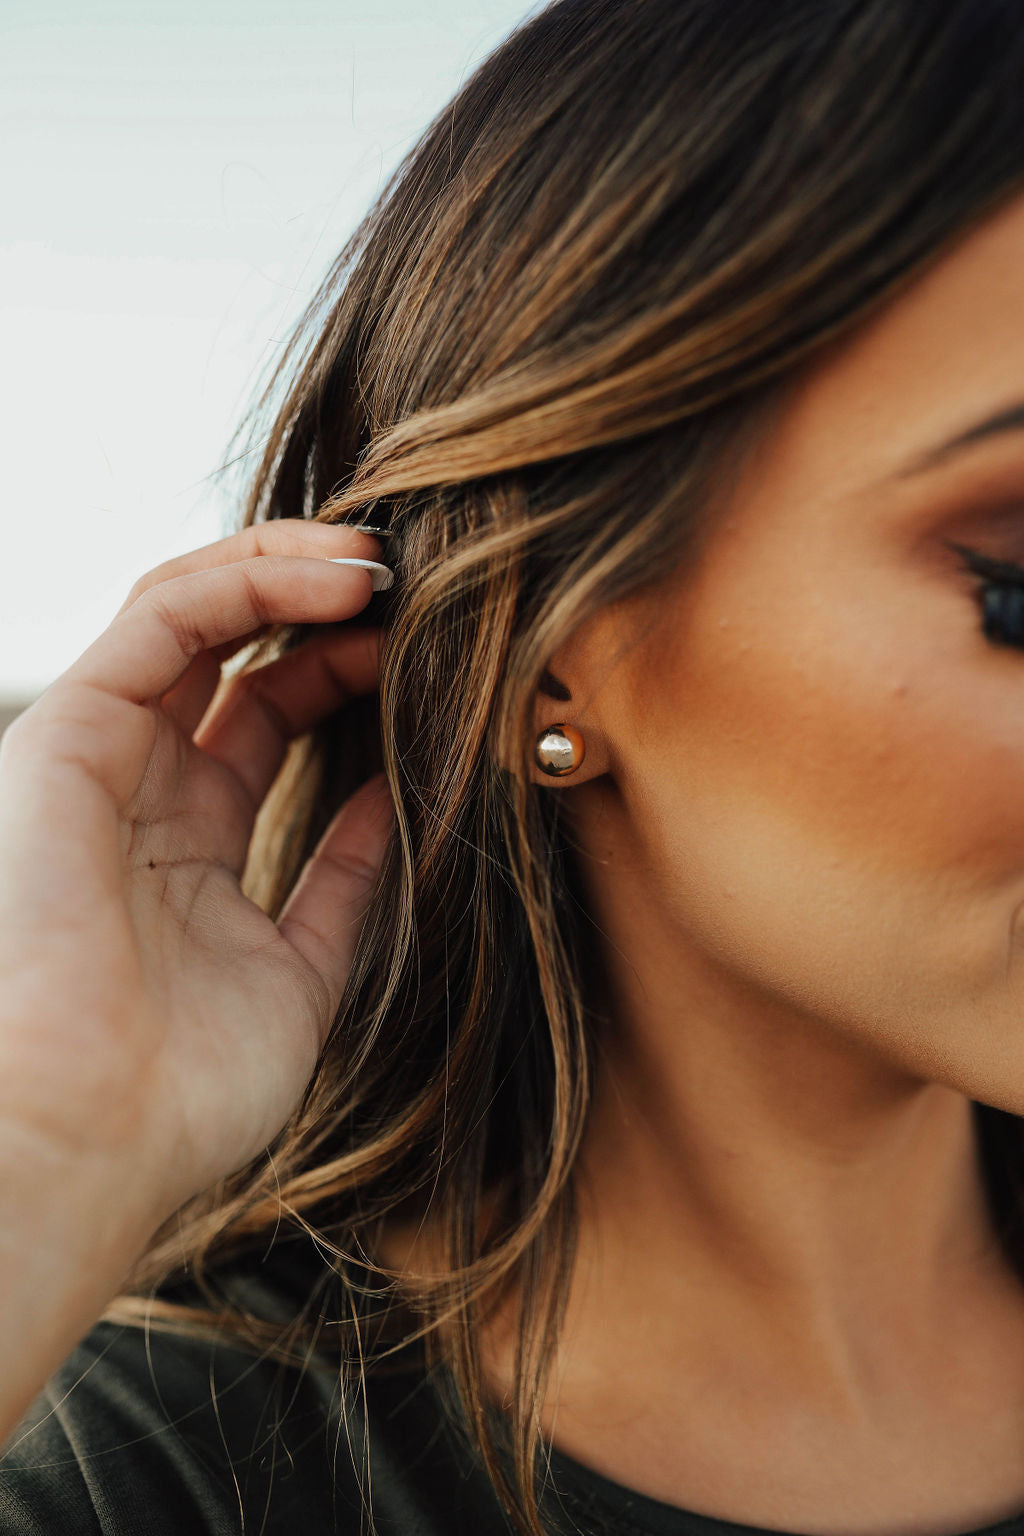 THE BALL STUD EARRING IN GOLD